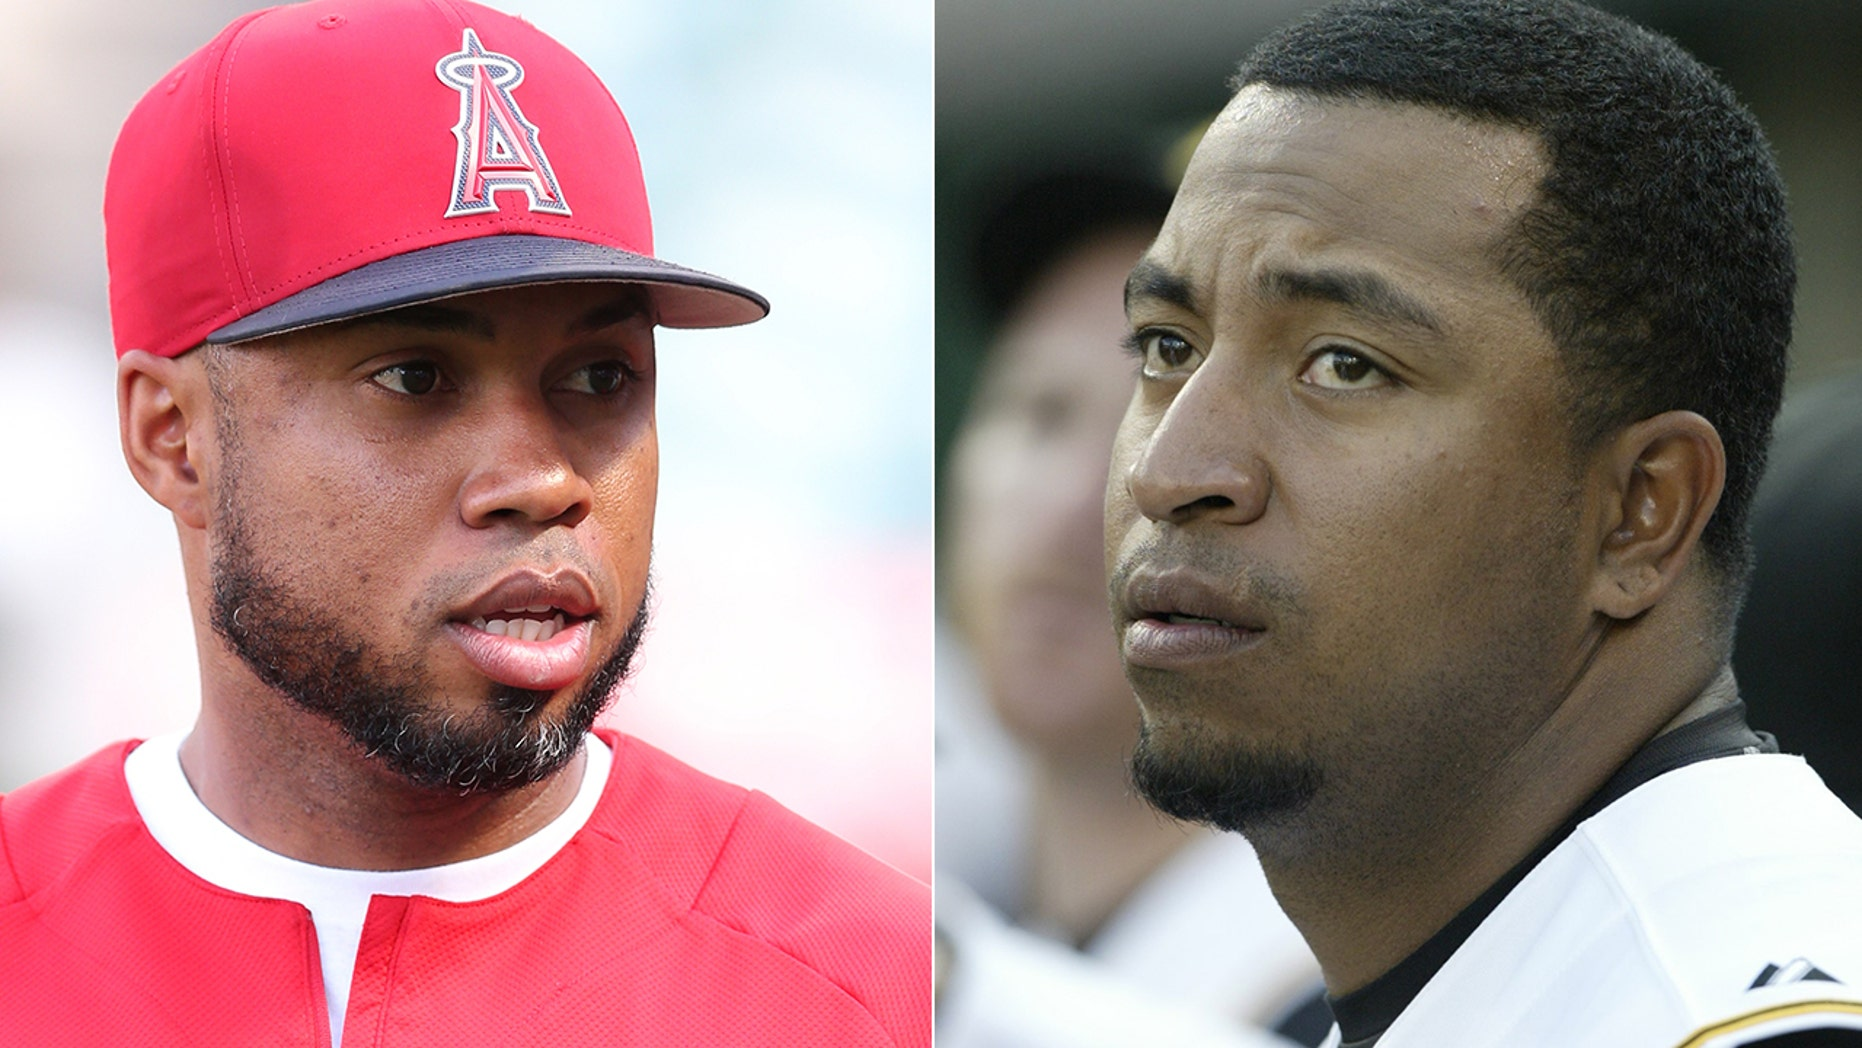 Major League Baseball players Luis Valbuena, Jose Castillo killed in auto crash